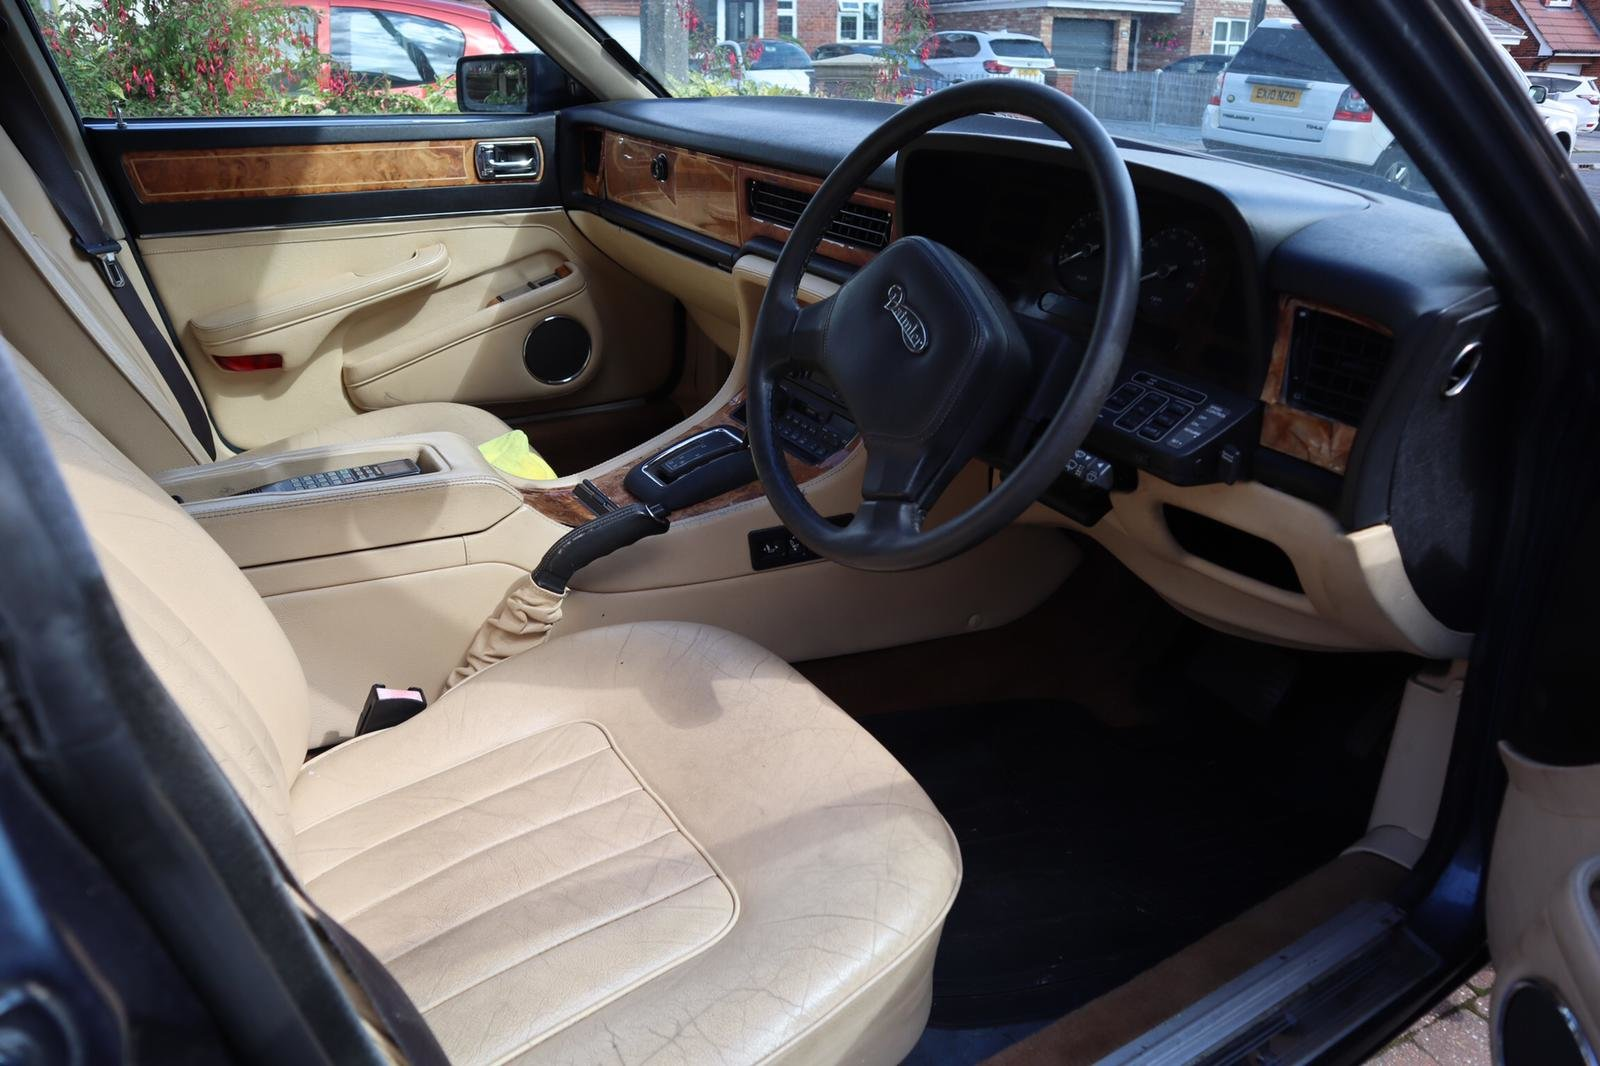 1988 XJ40  Daimler Sovereign (1 Owner from New) For Sale (picture 2 of 5)